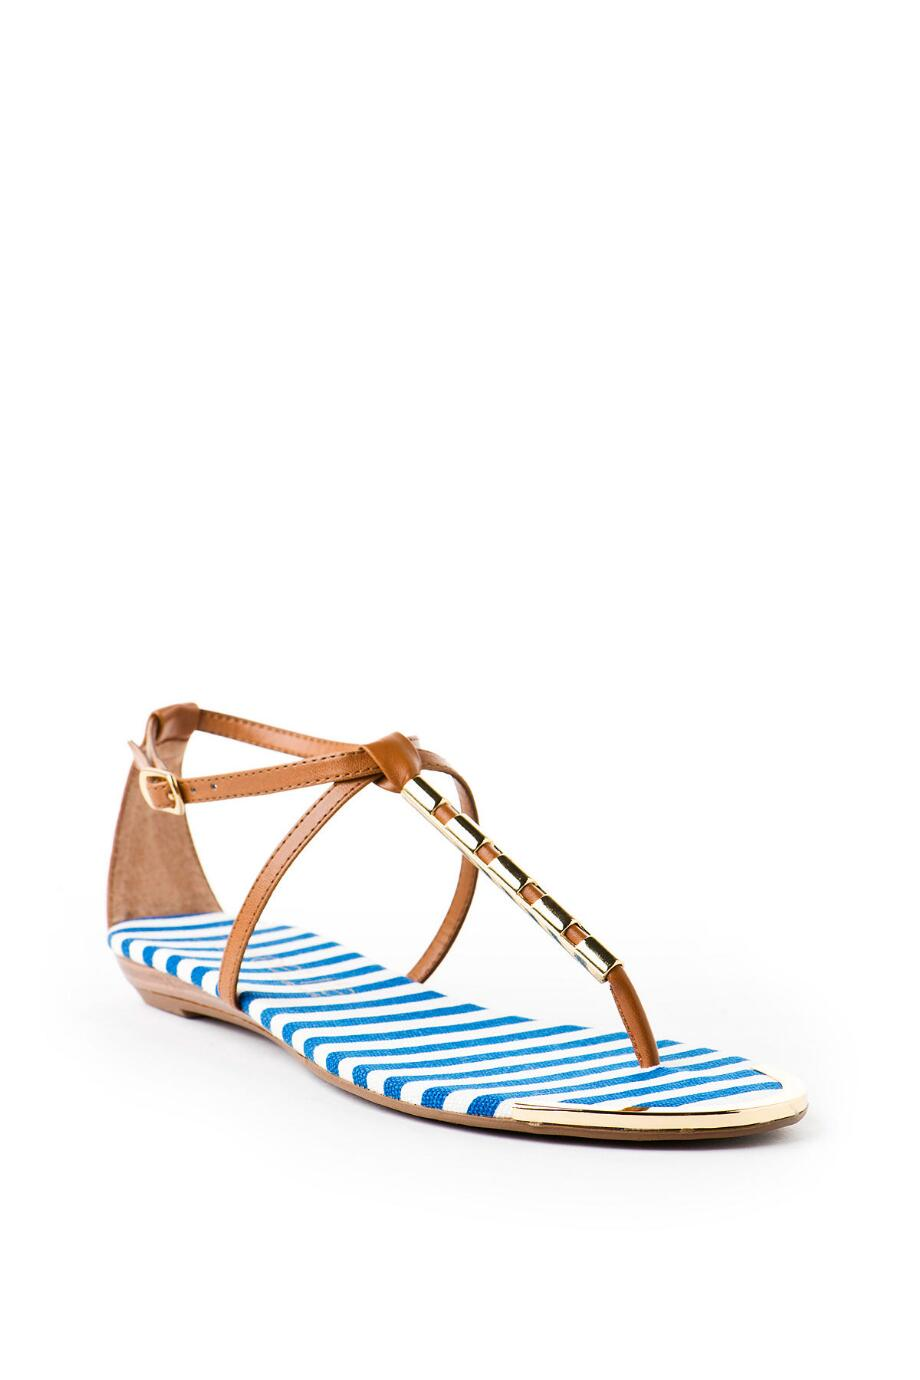 Sweet Life by Dolce Vita Shoes, Arita Sandal in Brown